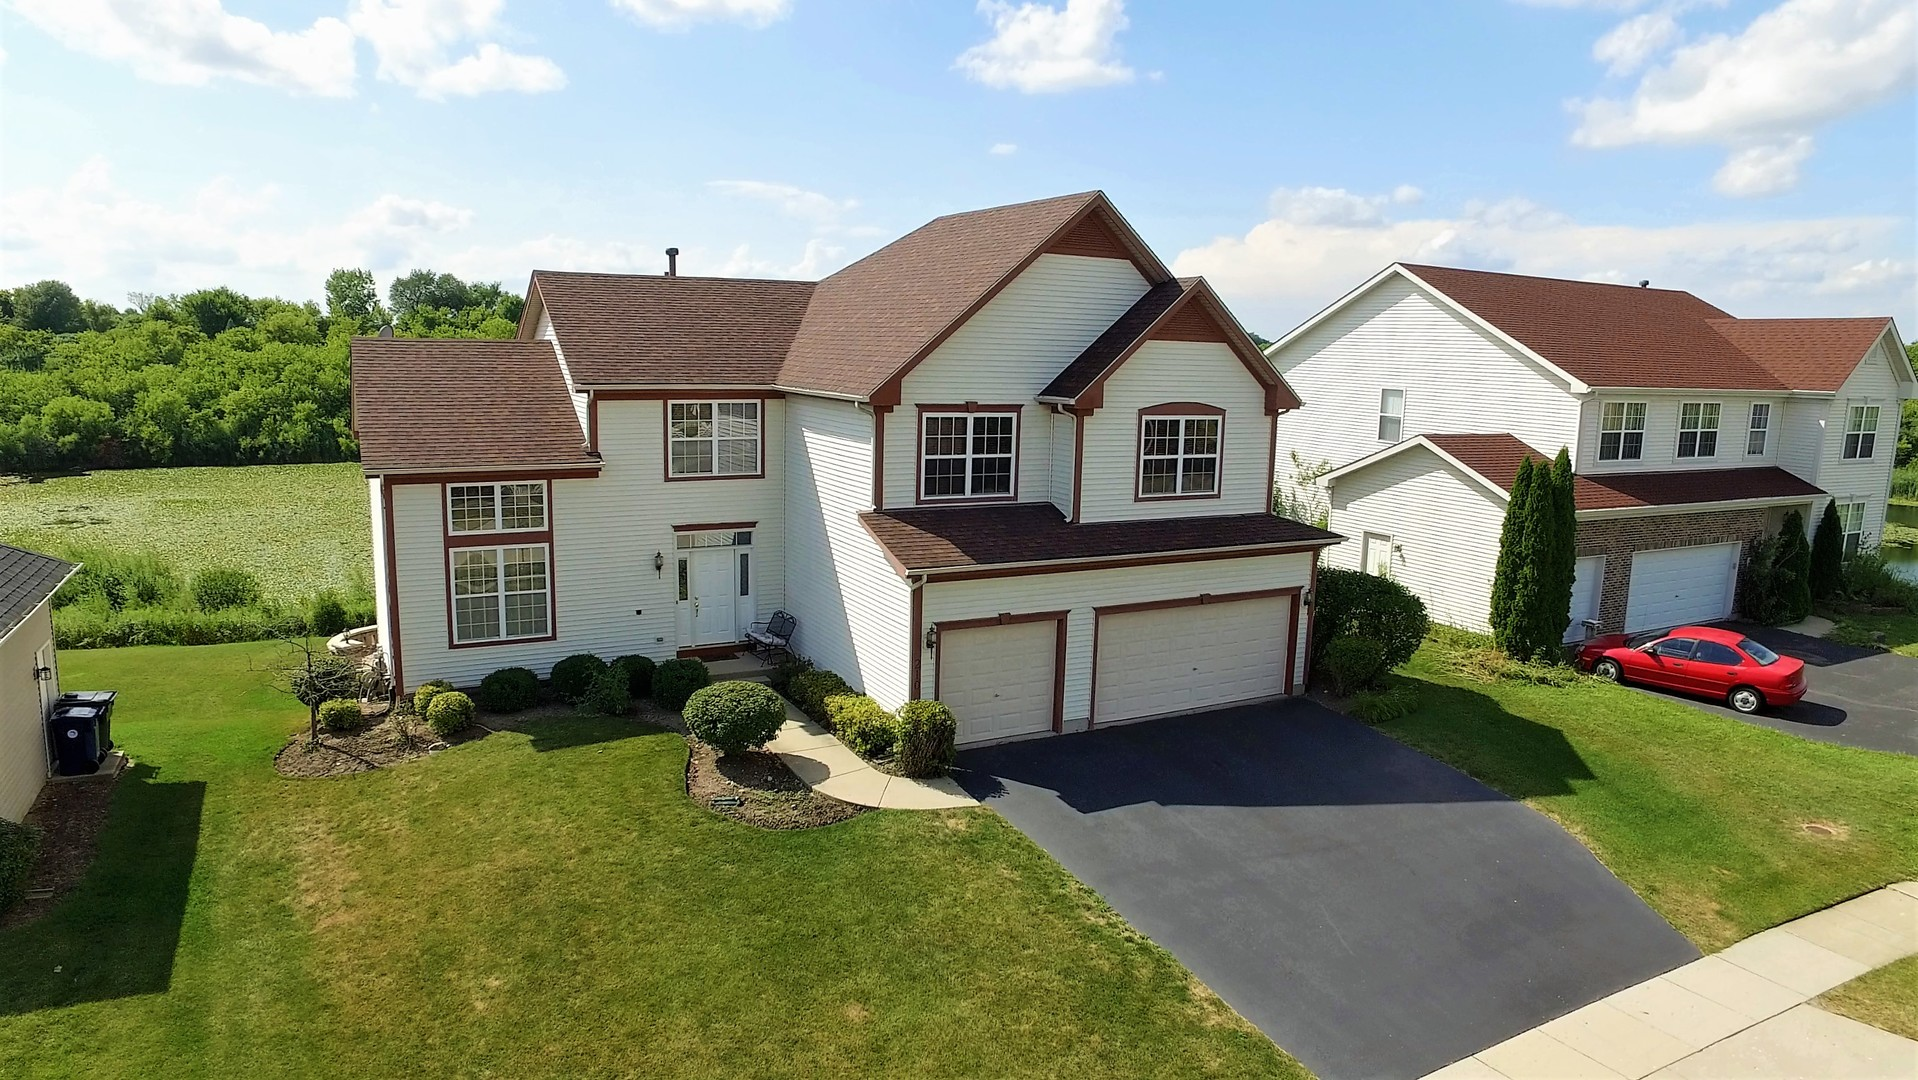 210 High Point Ridge, Algonquin, IL 60102